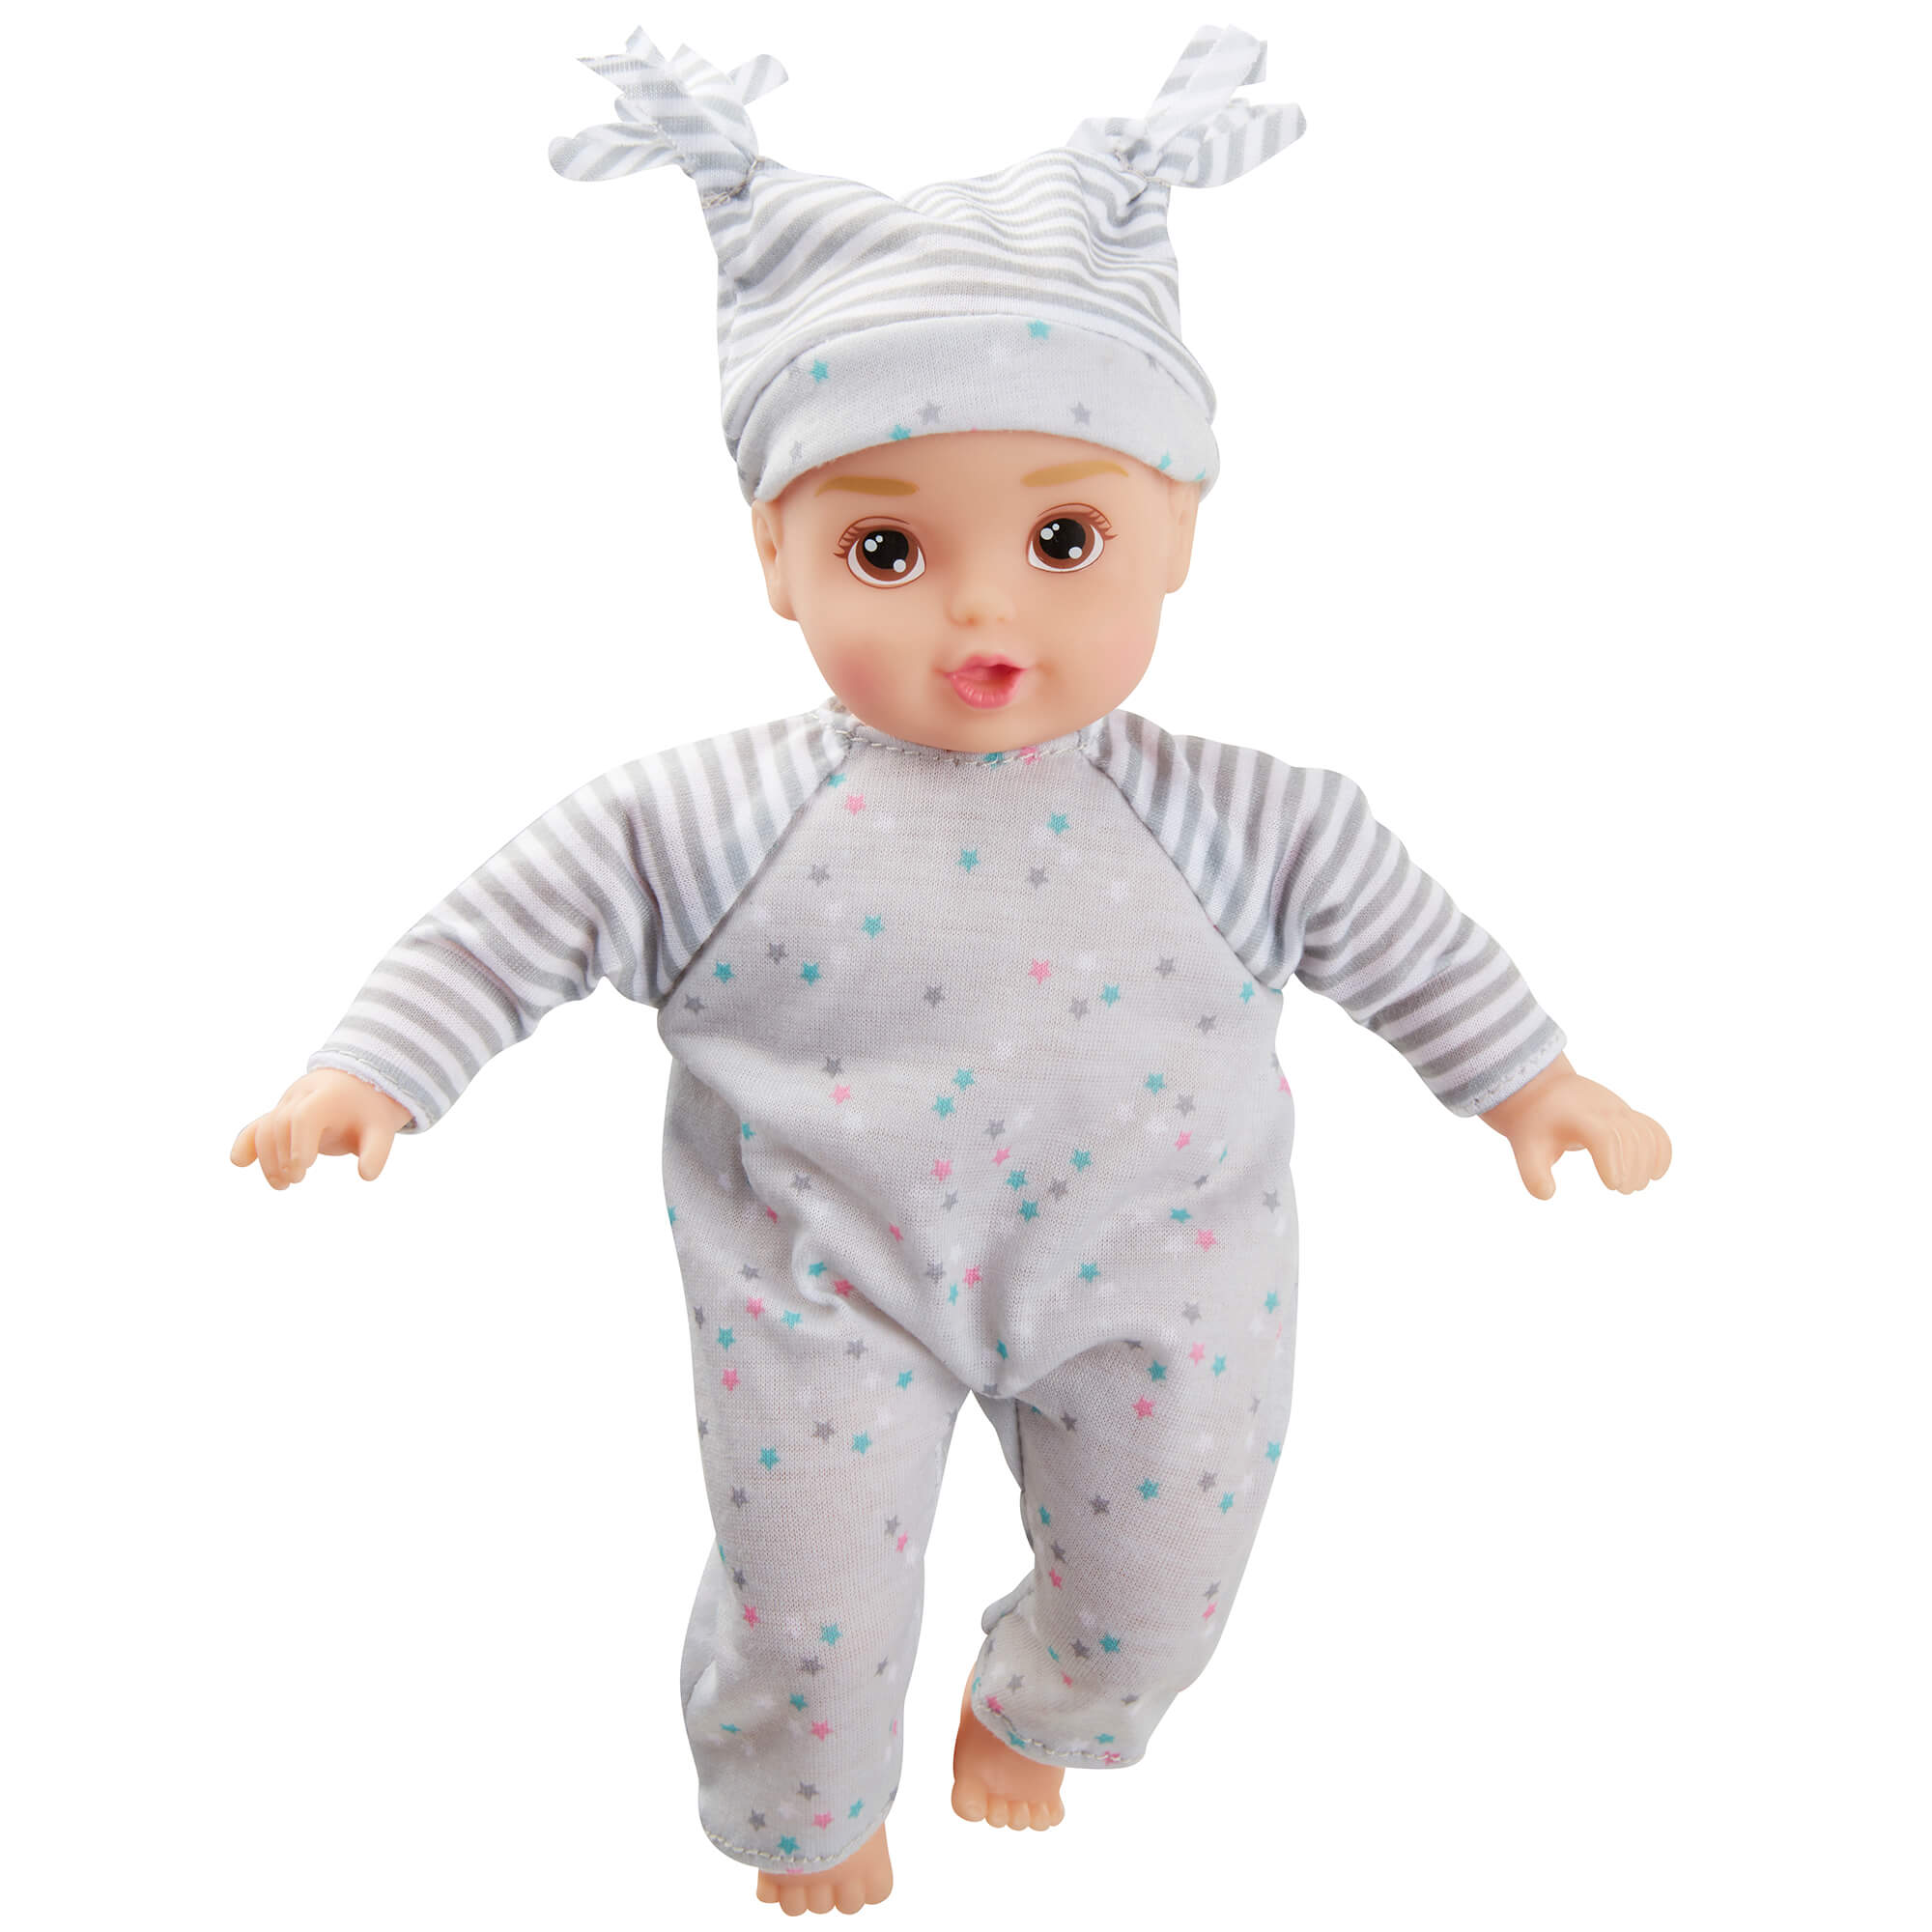 Perfectly Cute Baby 8 inch My Lil' Baby Boy Doll